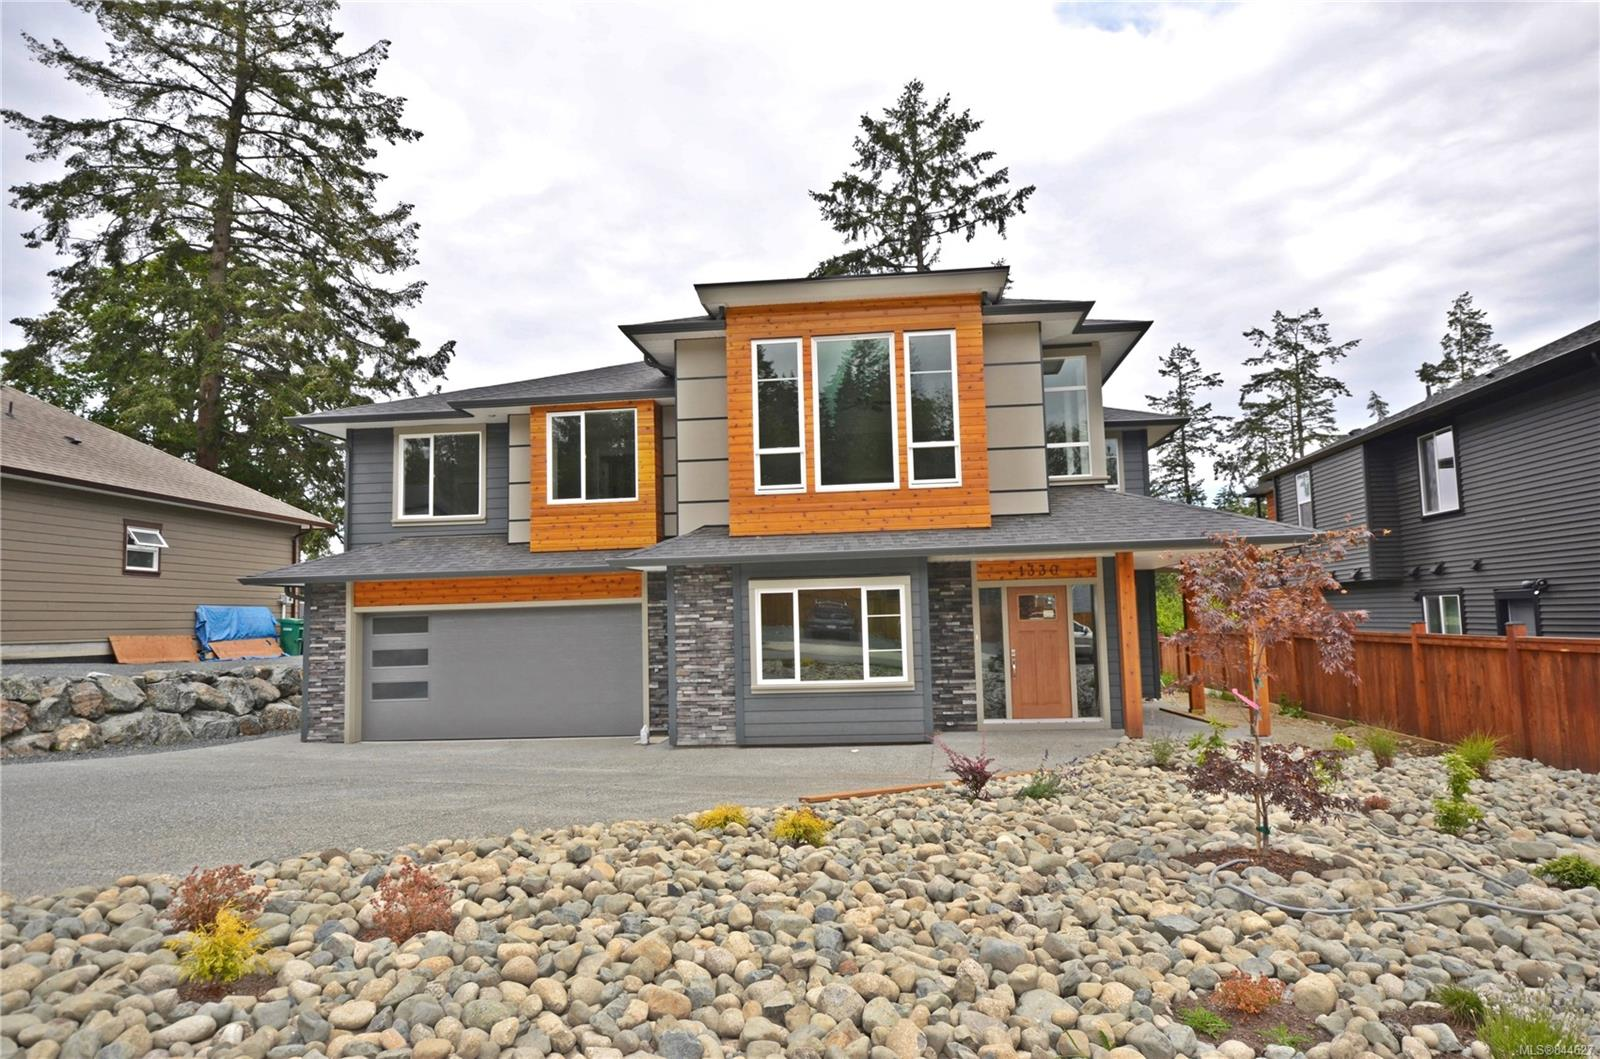 FEATURED LISTING: 1330 Blue Heron Cres NANAIMO